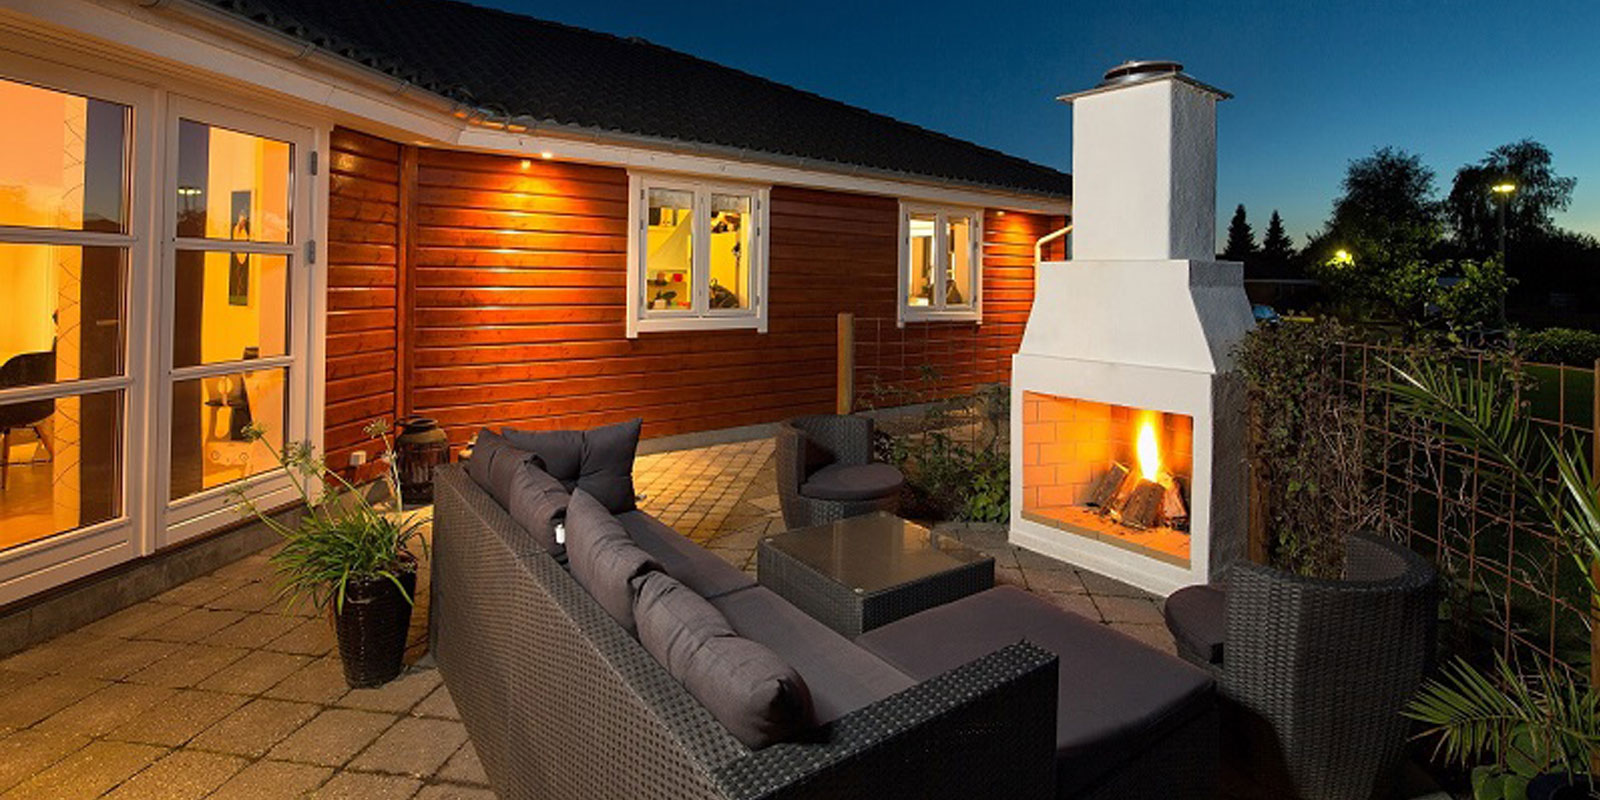 Bring the indoors out with the Garden Fireplace from Schiedel Chimney Systems